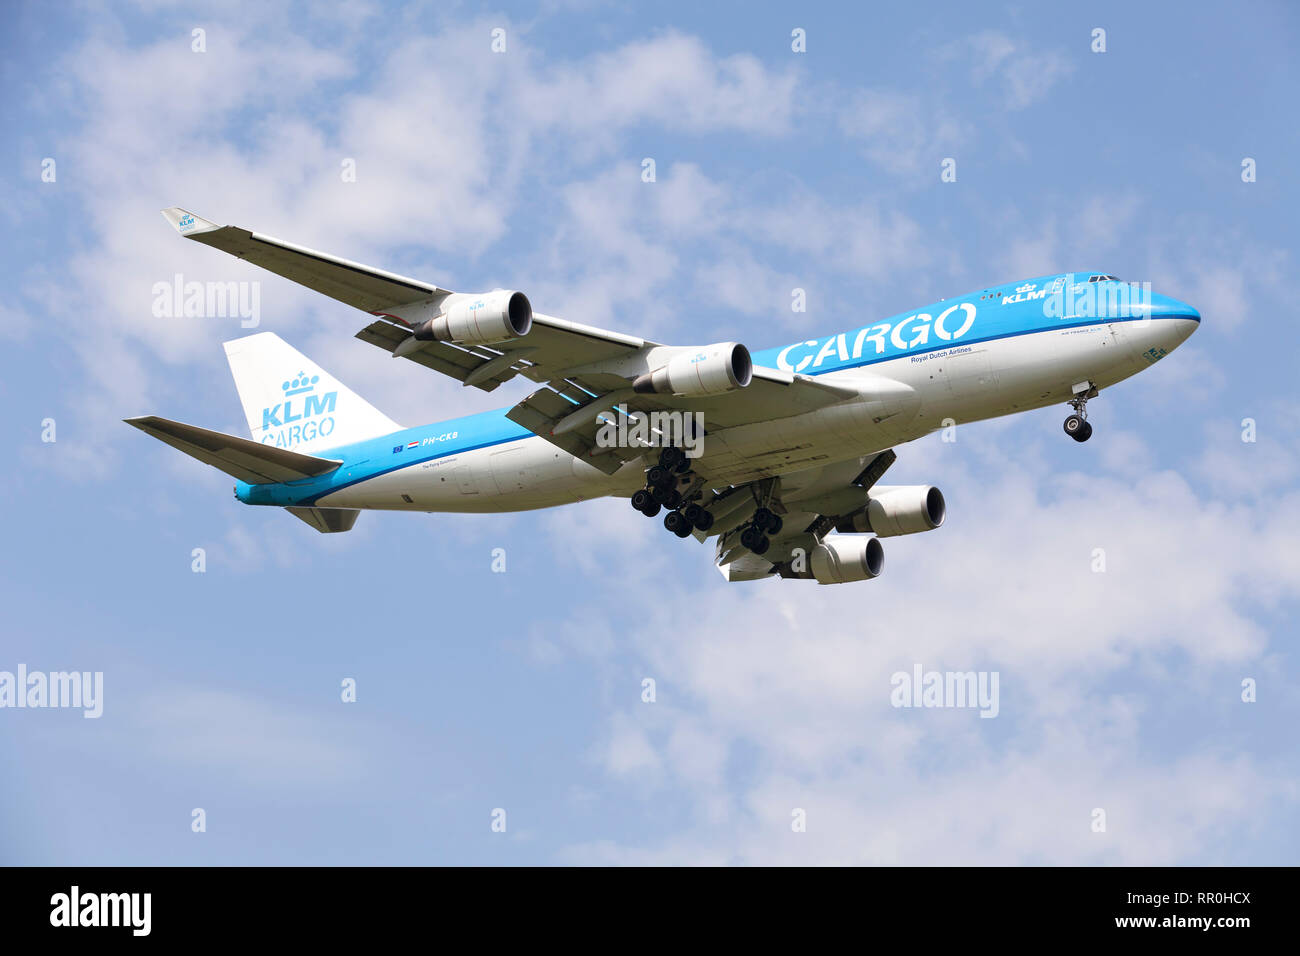 View of Boeing 747-406F/ER/SCD cargo aircraft in flight from KLM-Royal Dutch Airlines Cargo company - Stock Image